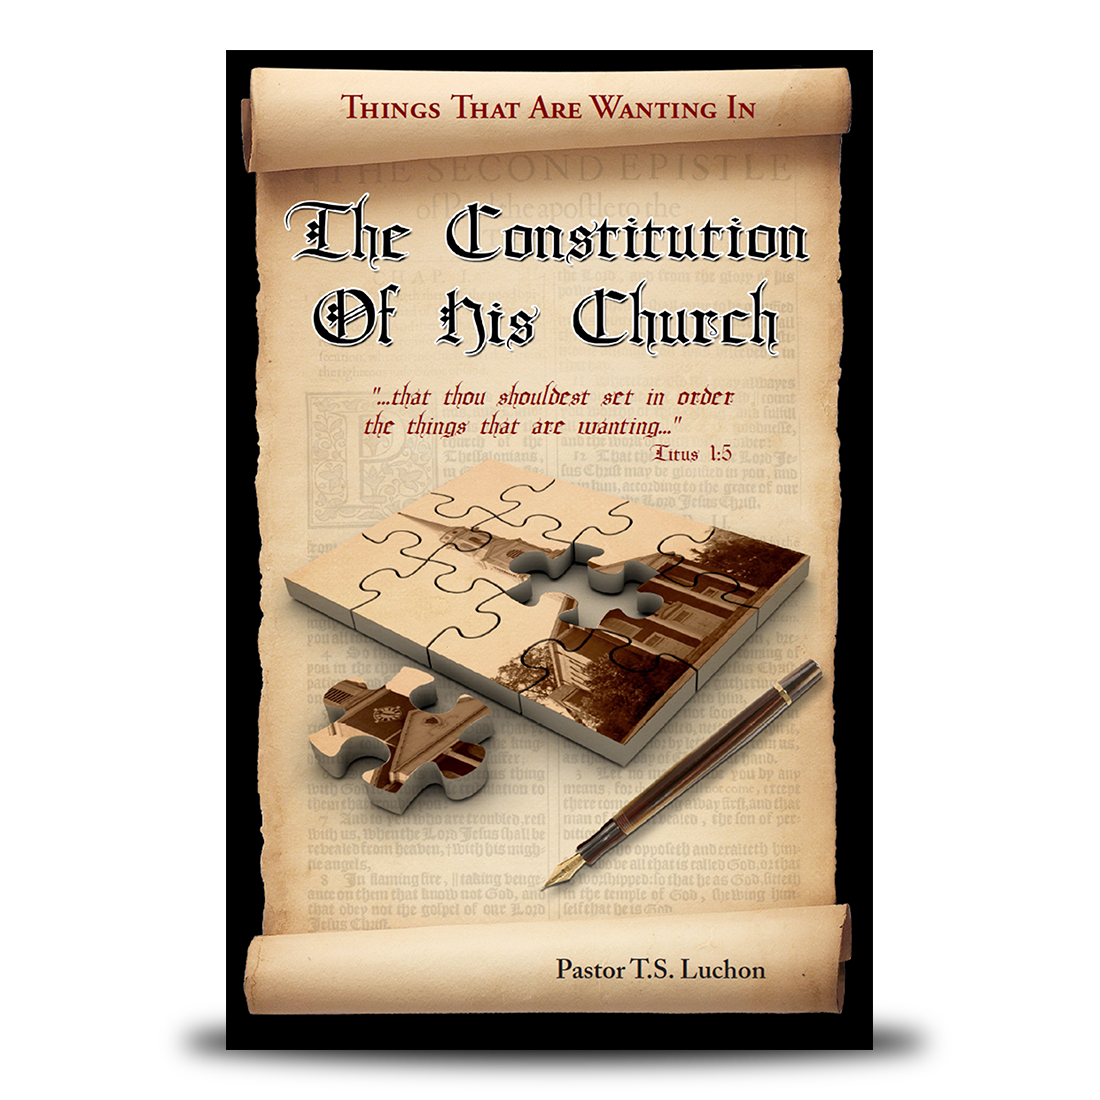 Things That Are Wanting In The Constitution of His Church